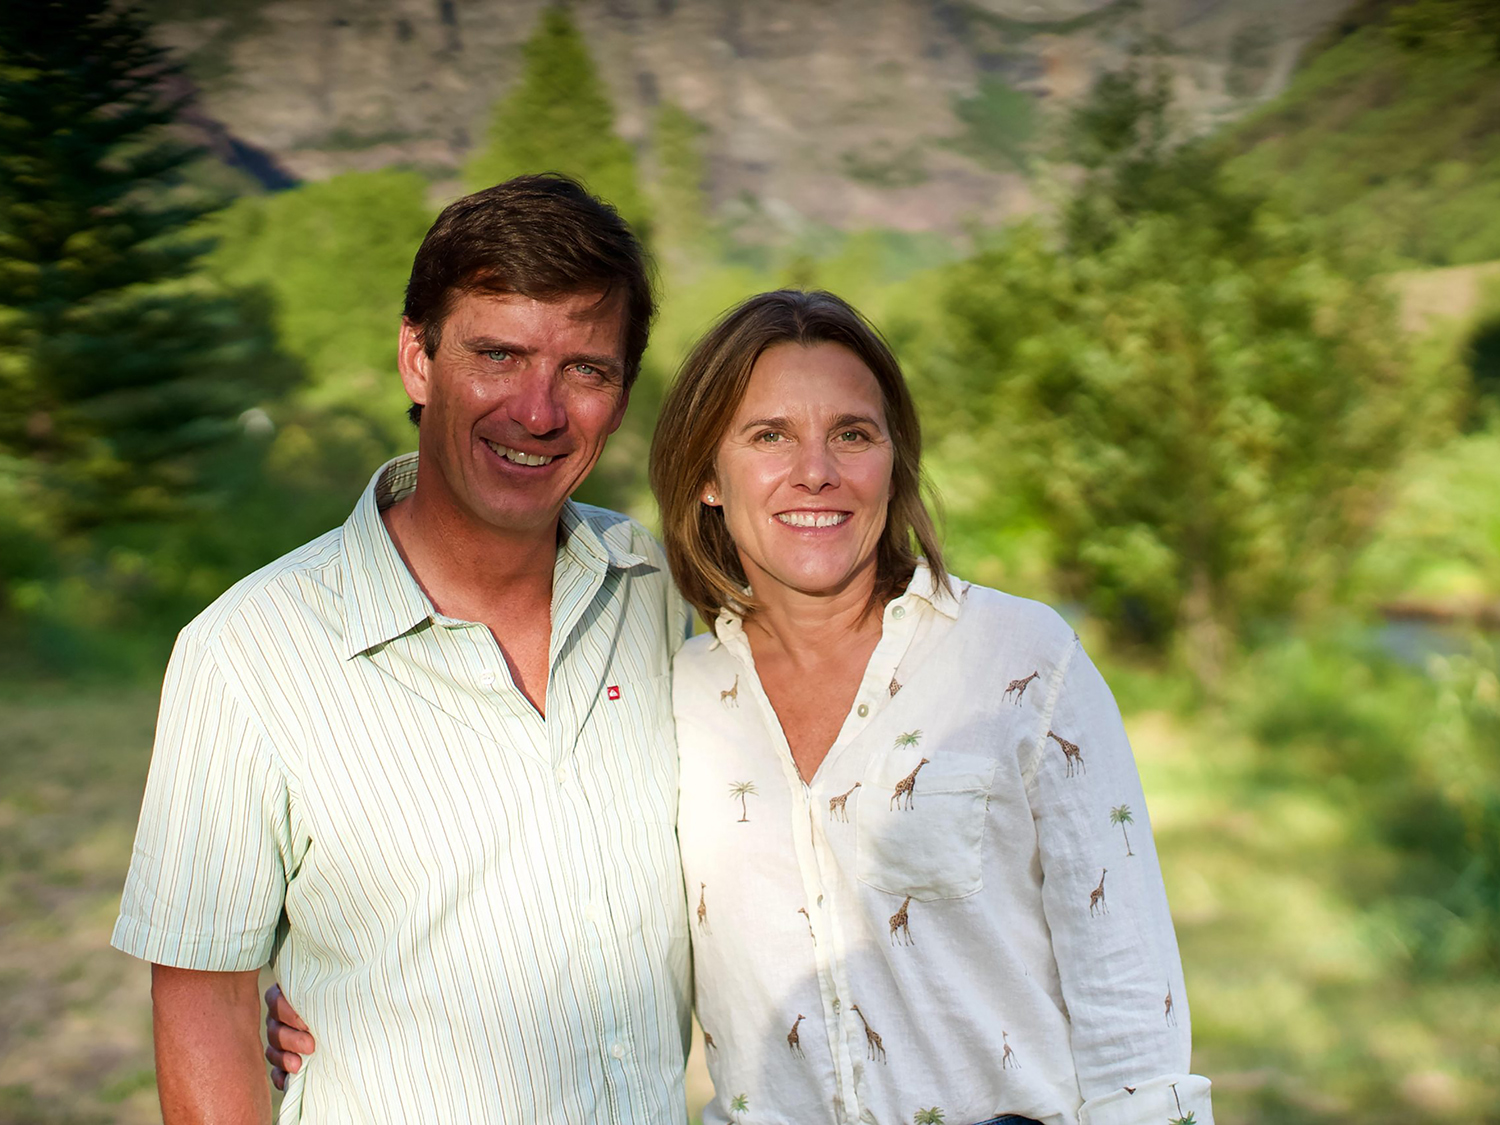 Stuart and Joanna Brown of Telluride, Colorado, have pledged to provide financial resources to launch the environmental initiative and annual funds to support programs at the Terry College of Business. (Submitted photo)